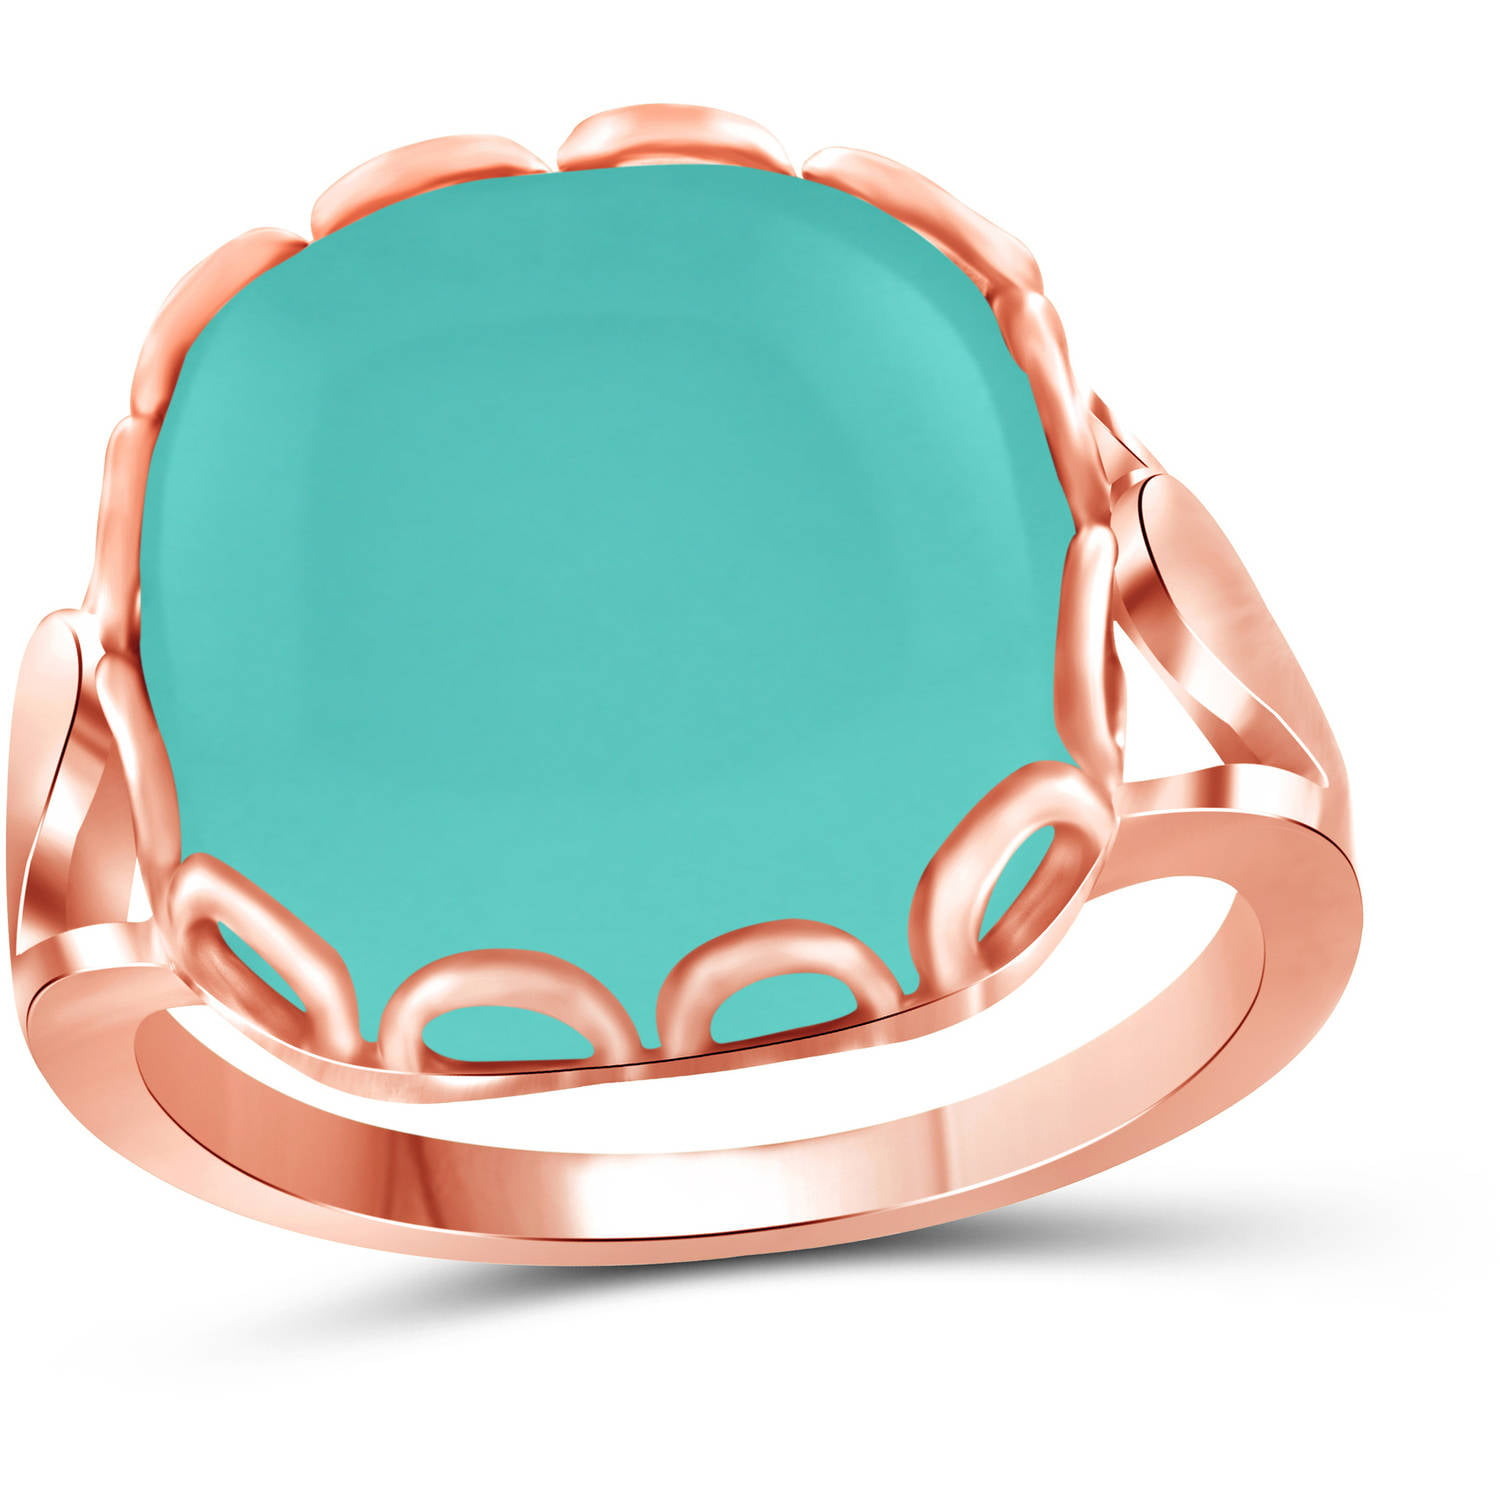 JewelersClub 10-3 4 Carat T.G.W. Chalcedony Rose Gold over Silver Fashion Ring by JewelersClub